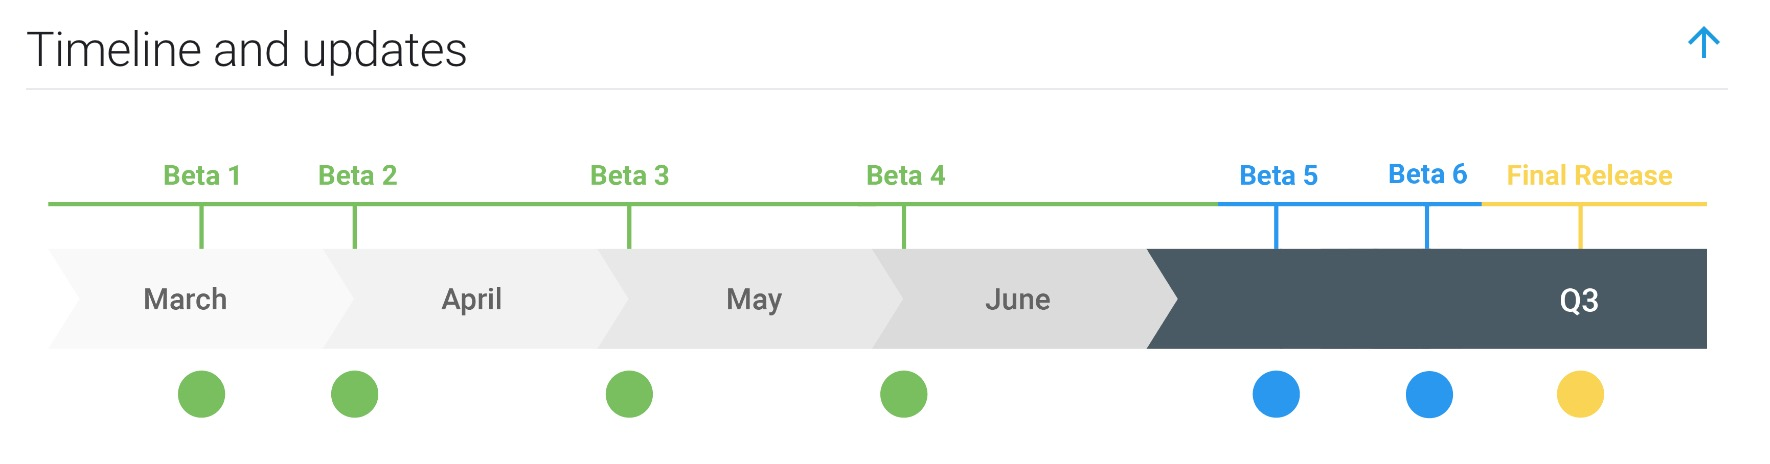 Android Q Beta timeline